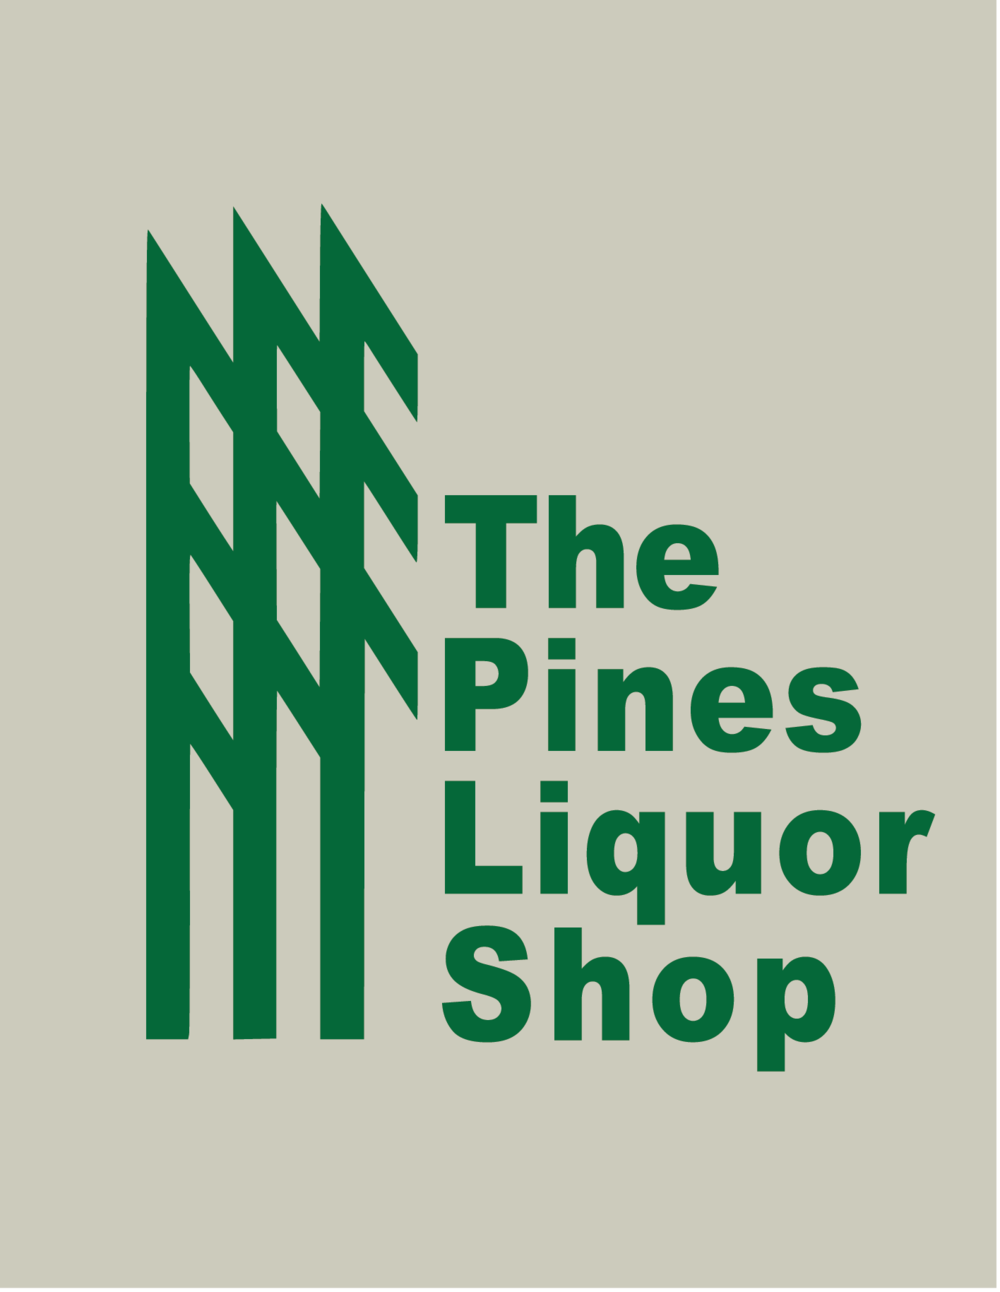 ThePines_logo-02.png